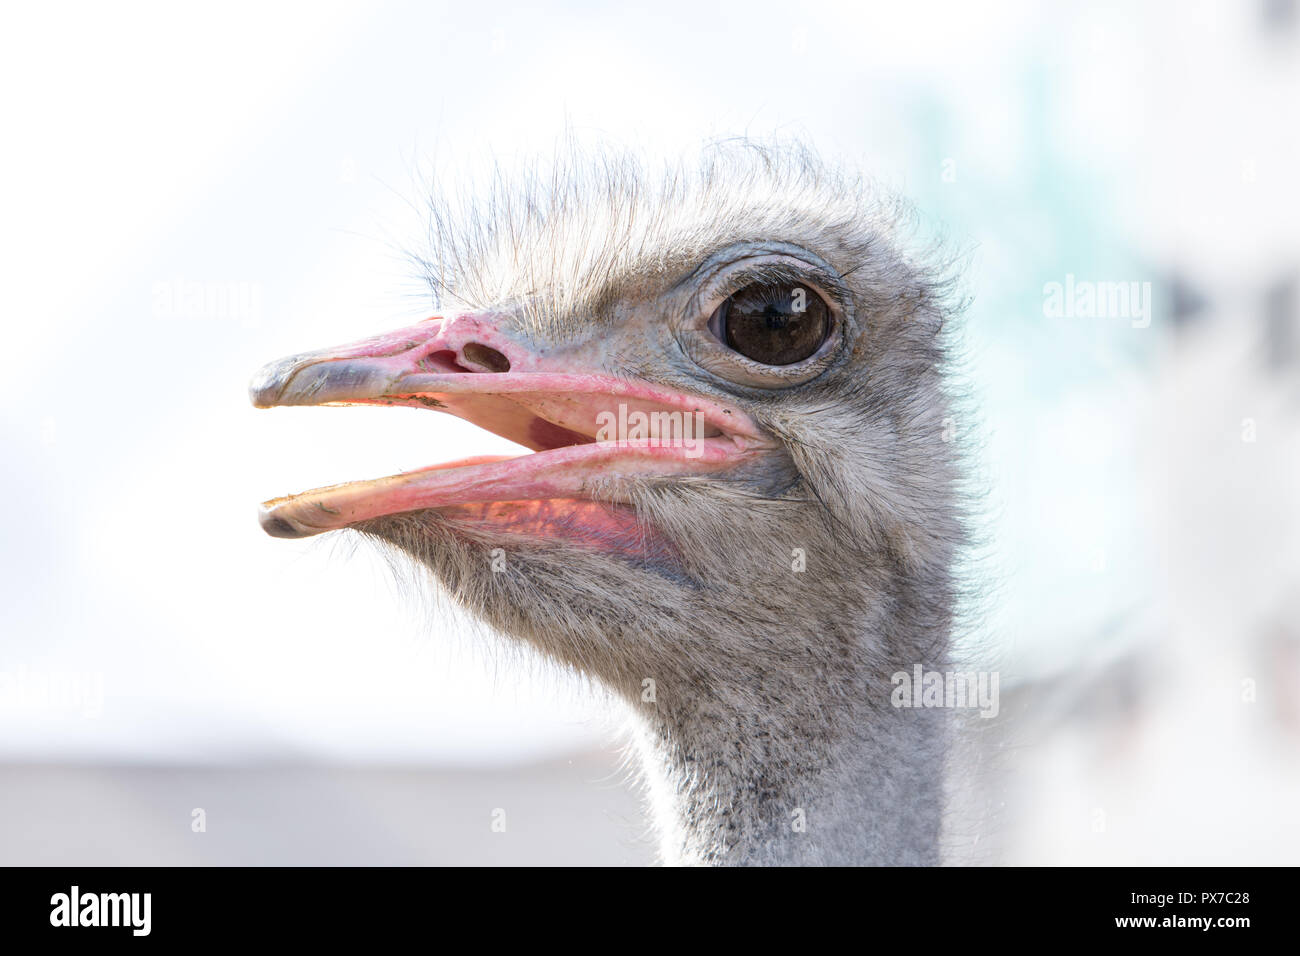 close up to face of an ostrich bird with mouth open,a flightless swift-running African bird with a long neck, long legs, and two toes on each foot. It Stock Photo